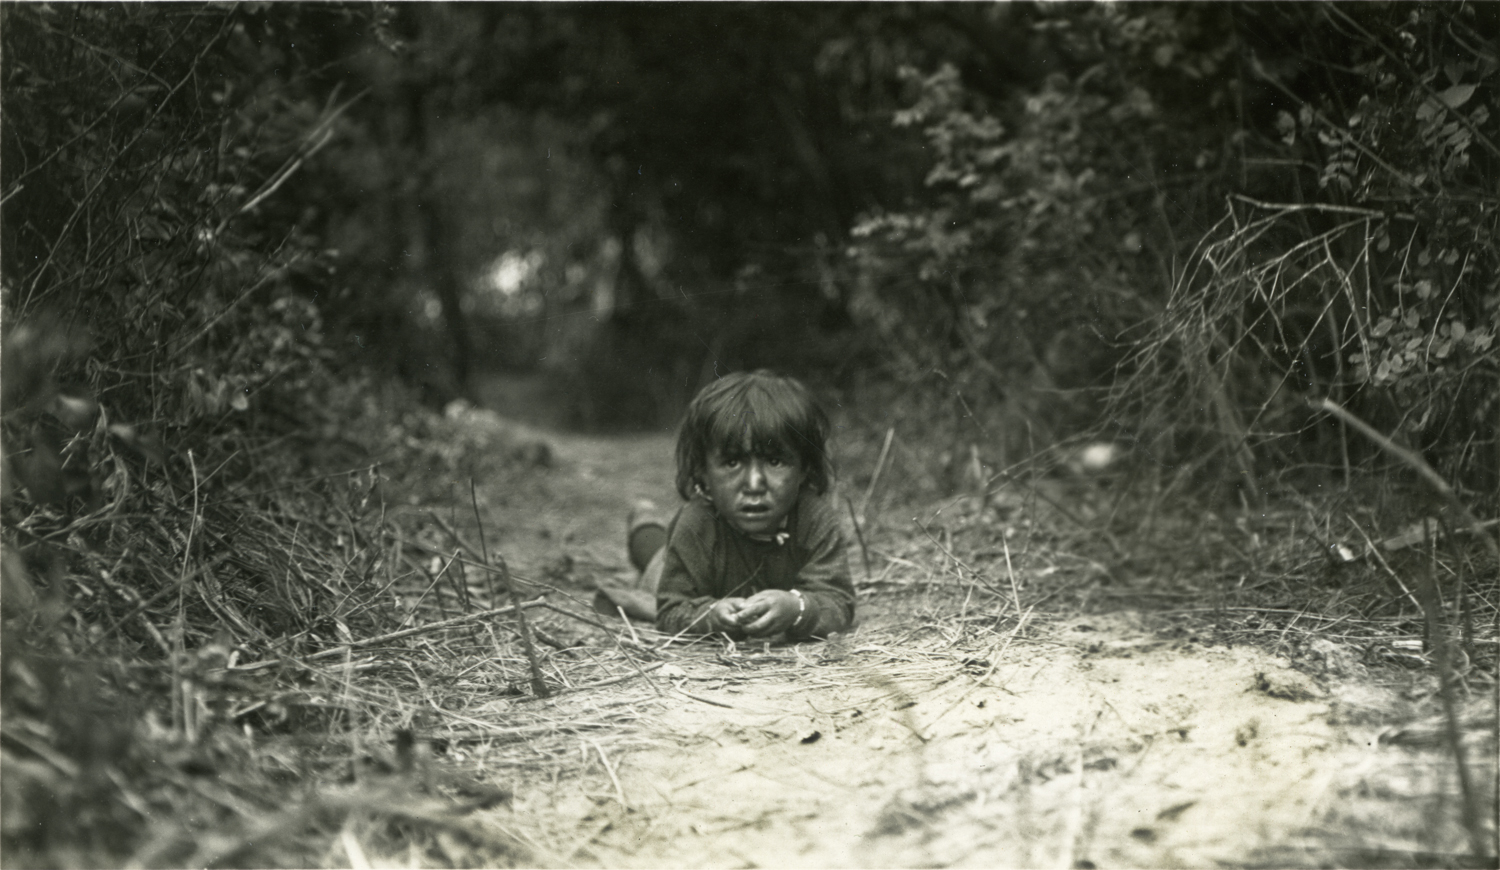 An Indian Boy in the Trail, Crow Reservation, Montana, 1909.  Photograph by Joseph Dixon.  Courtesy of the Mathers Museum, Wanamaker Collection,  Bloomington, I.N., W-2394.